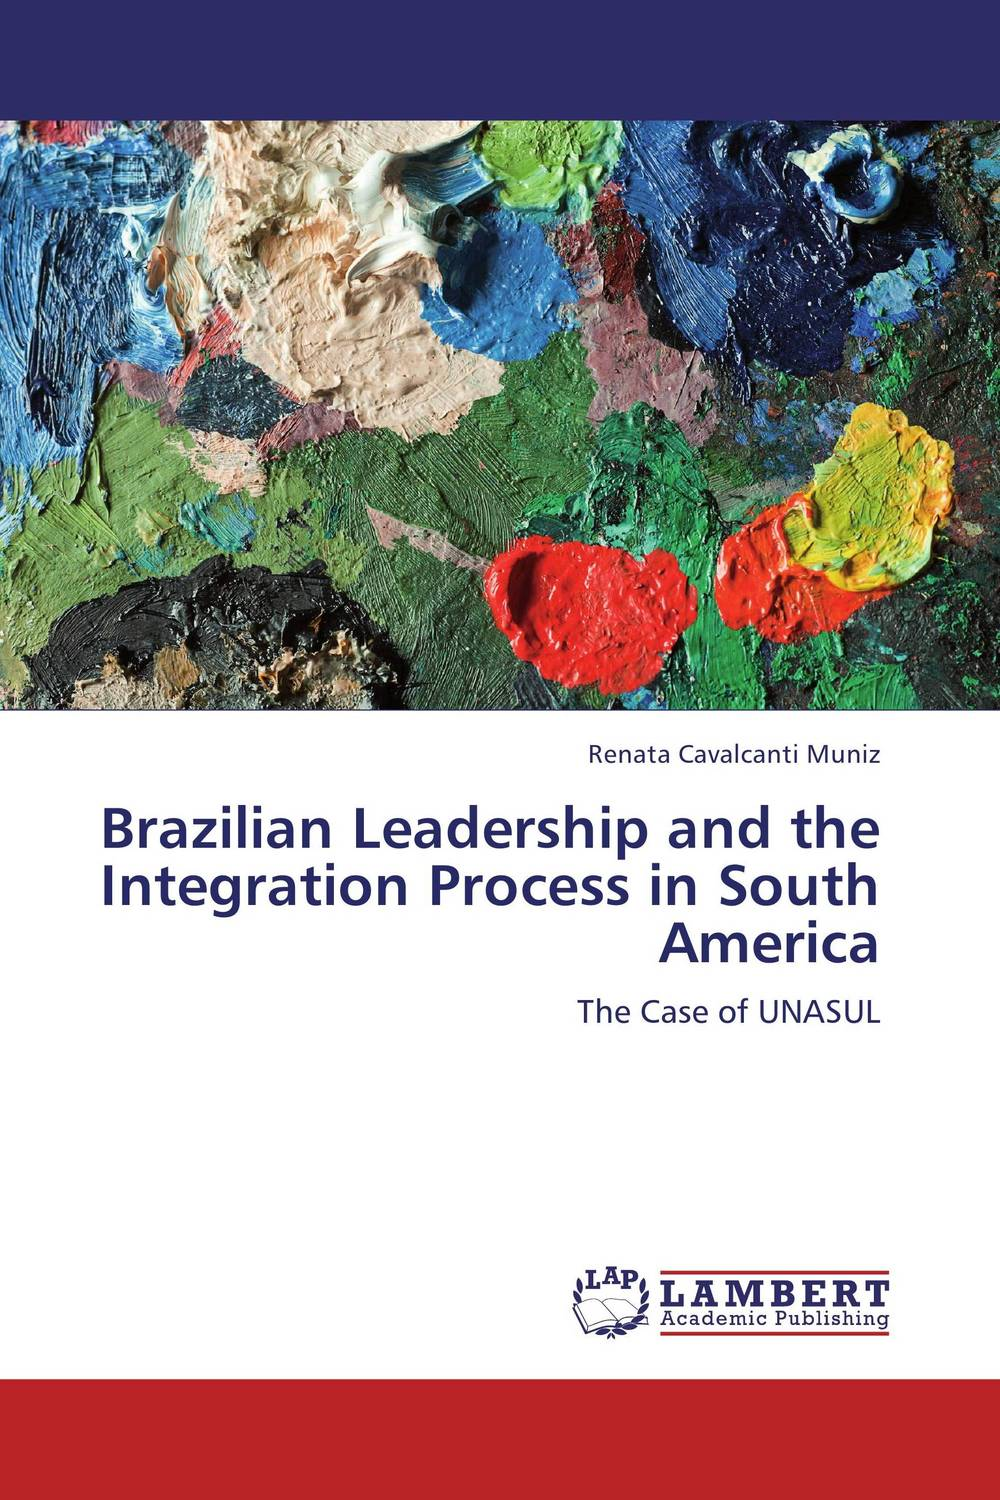 Brazilian Leadership and the Integration Process in South America jim mcconoughey the wisdom of failure how to learn the tough leadership lessons without paying the price